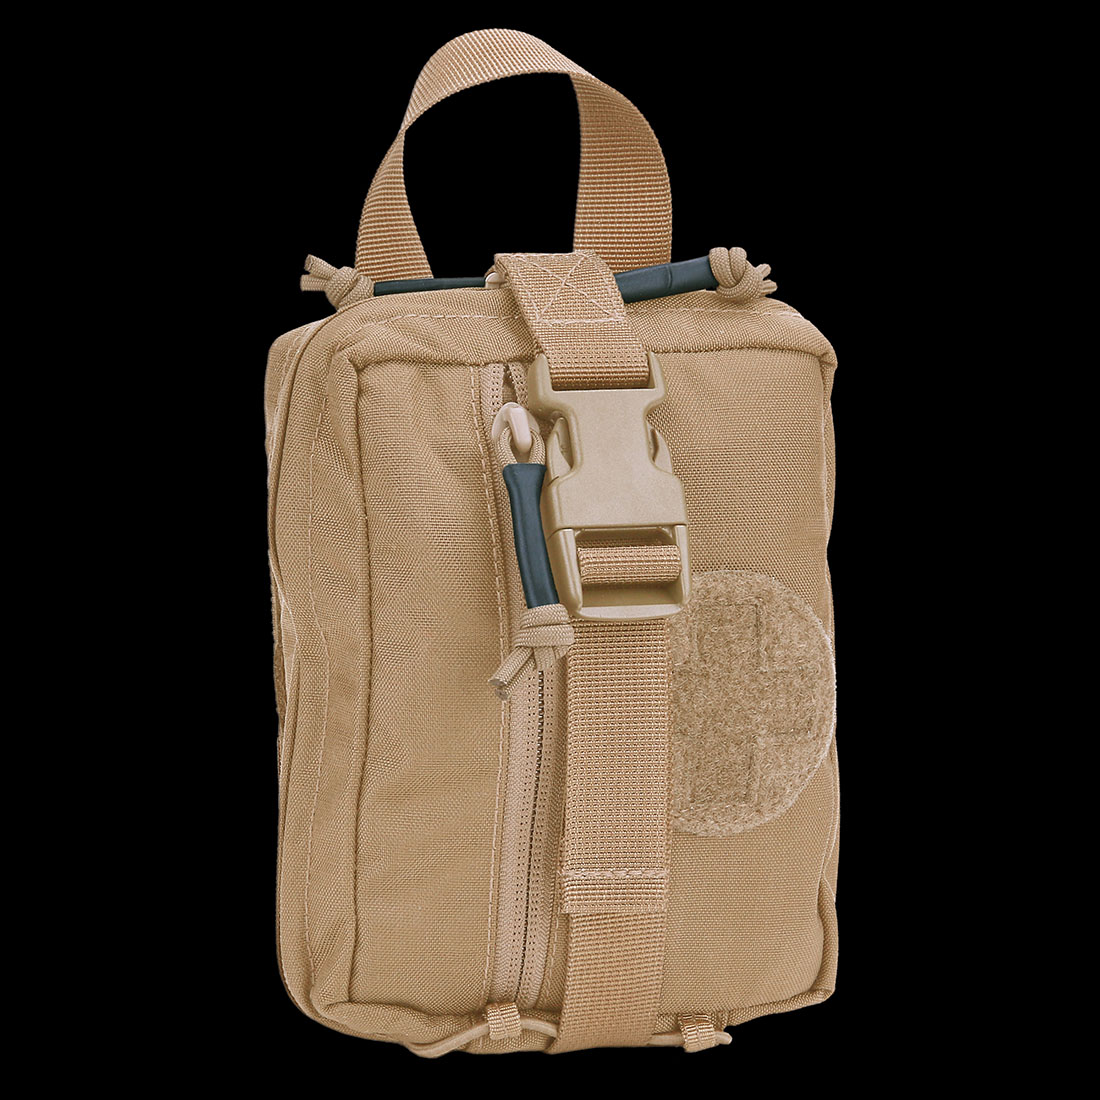 TF-2215 Medic Pouch Large Coyote